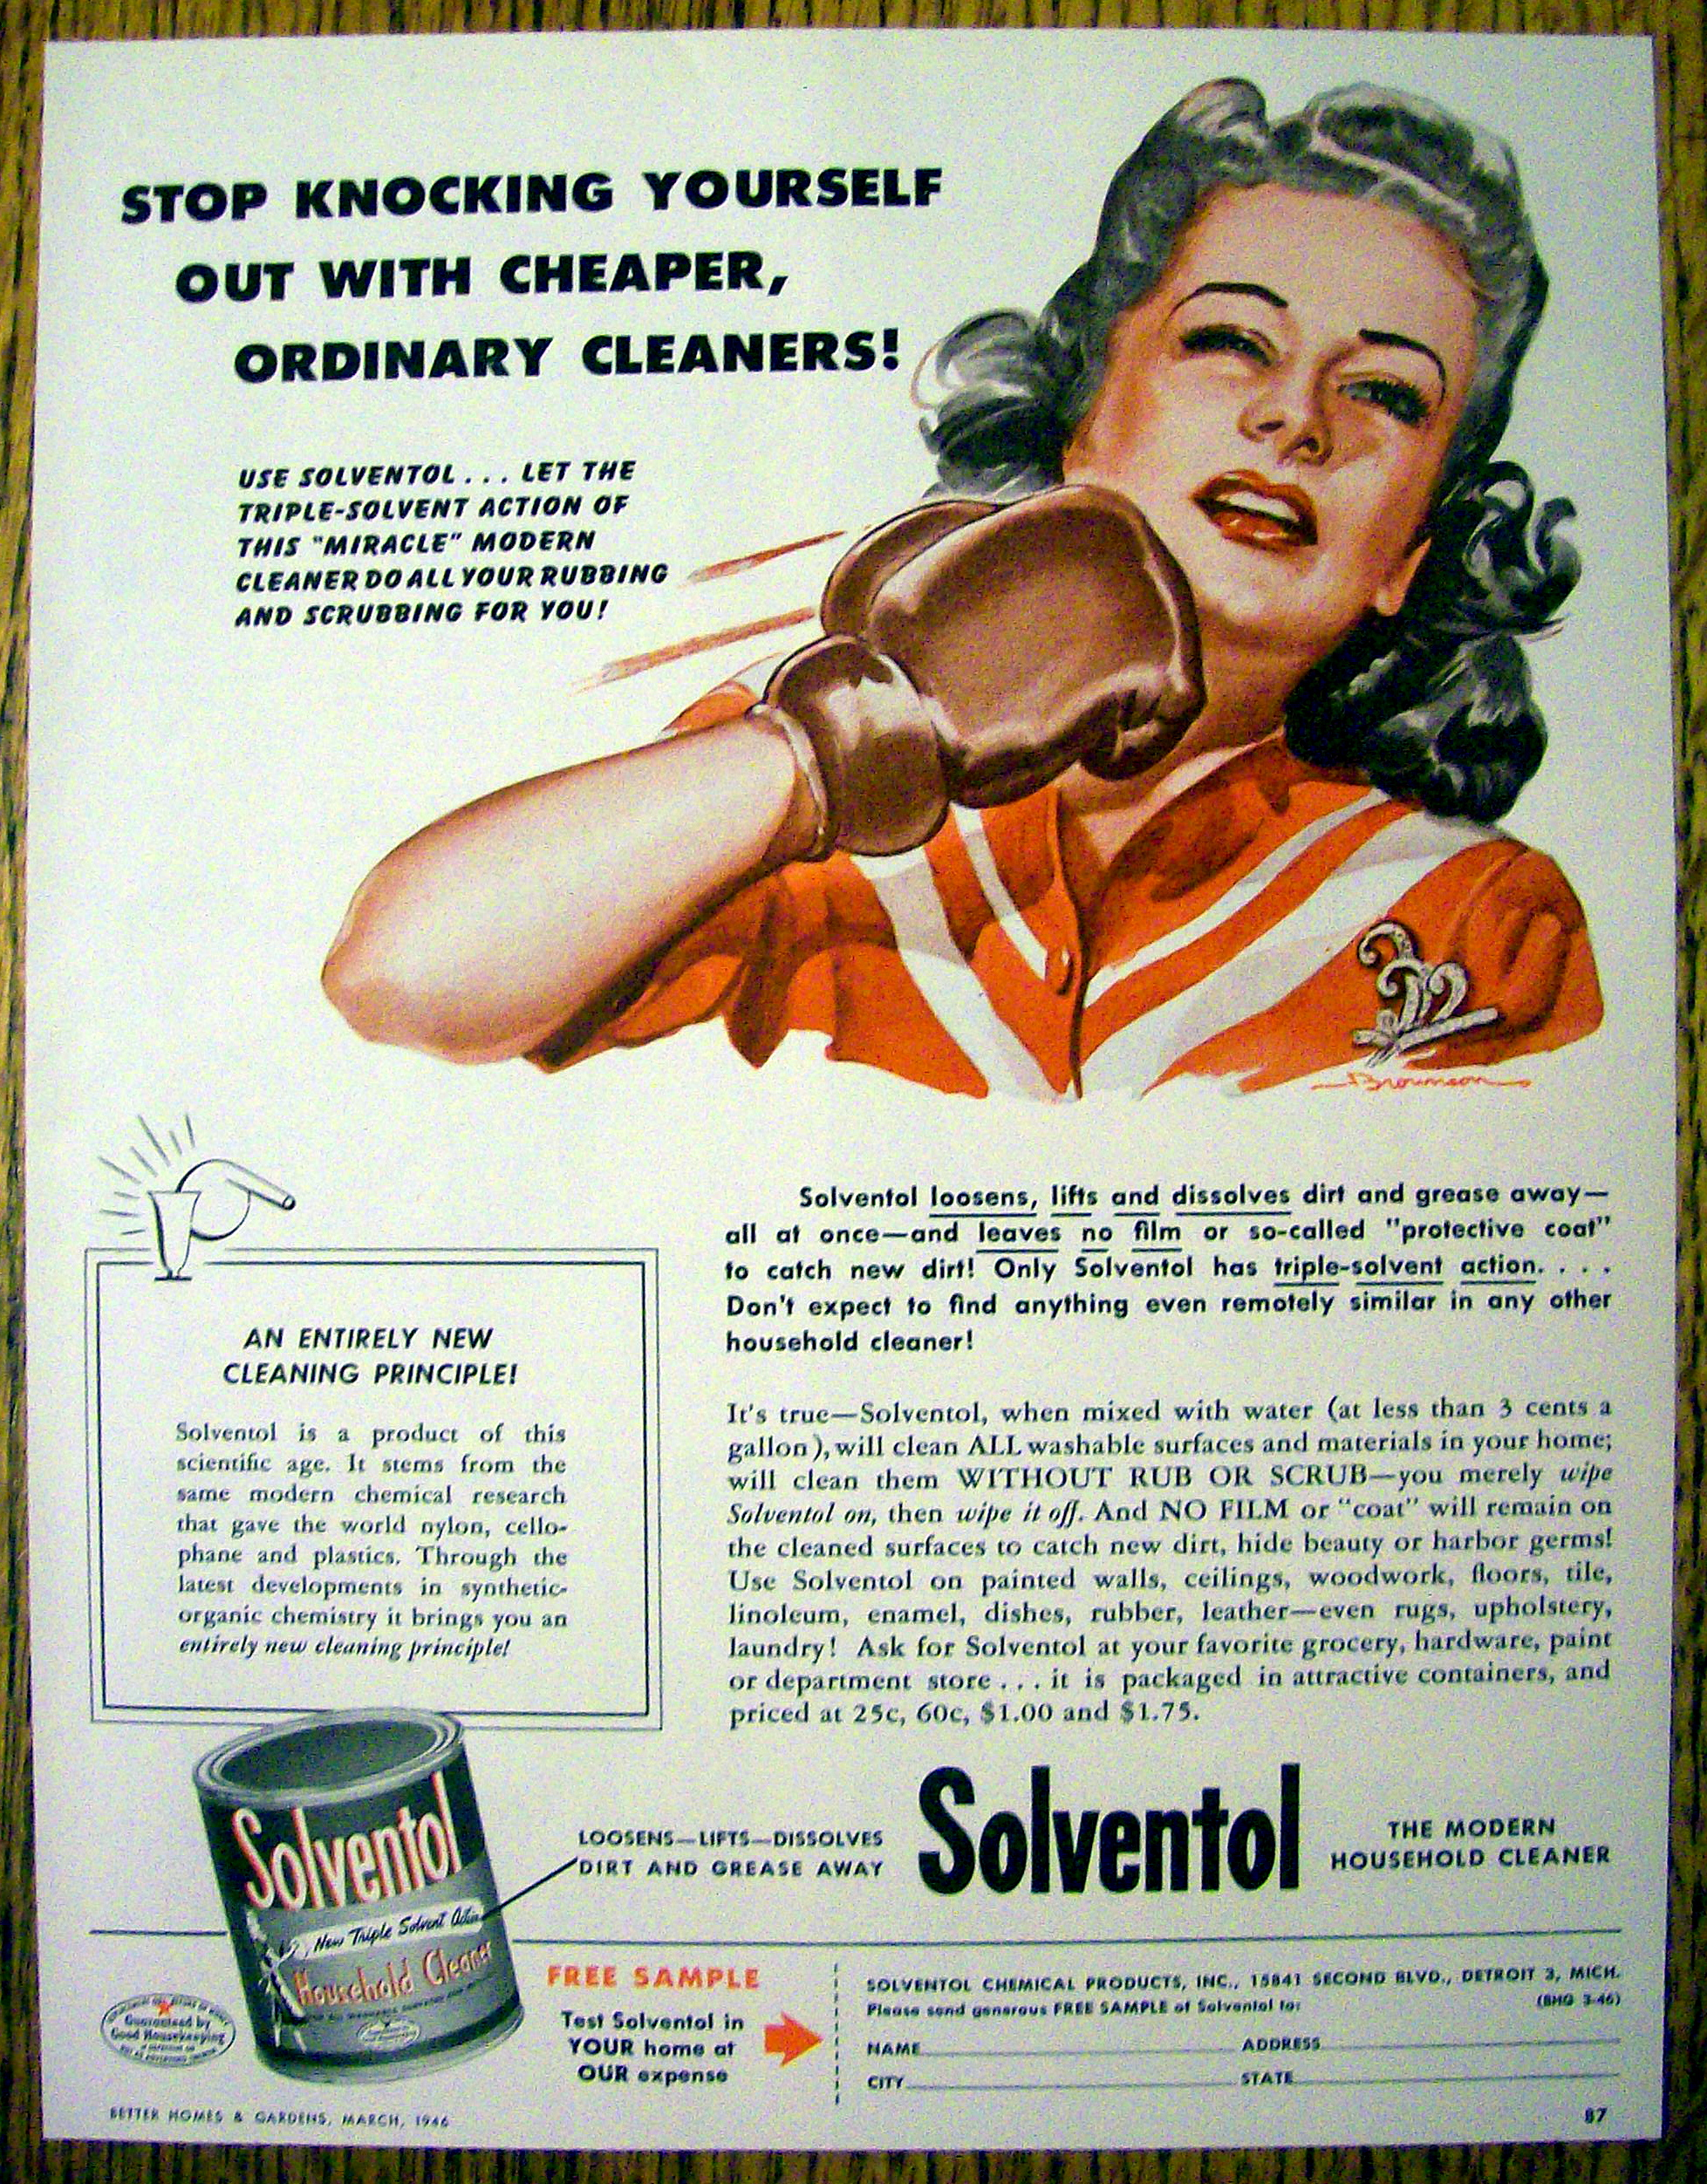 1946 solventol household cleaner w w punching self soap 1946 solventol household cleaner w w punching self soap cleaners at ads by dee